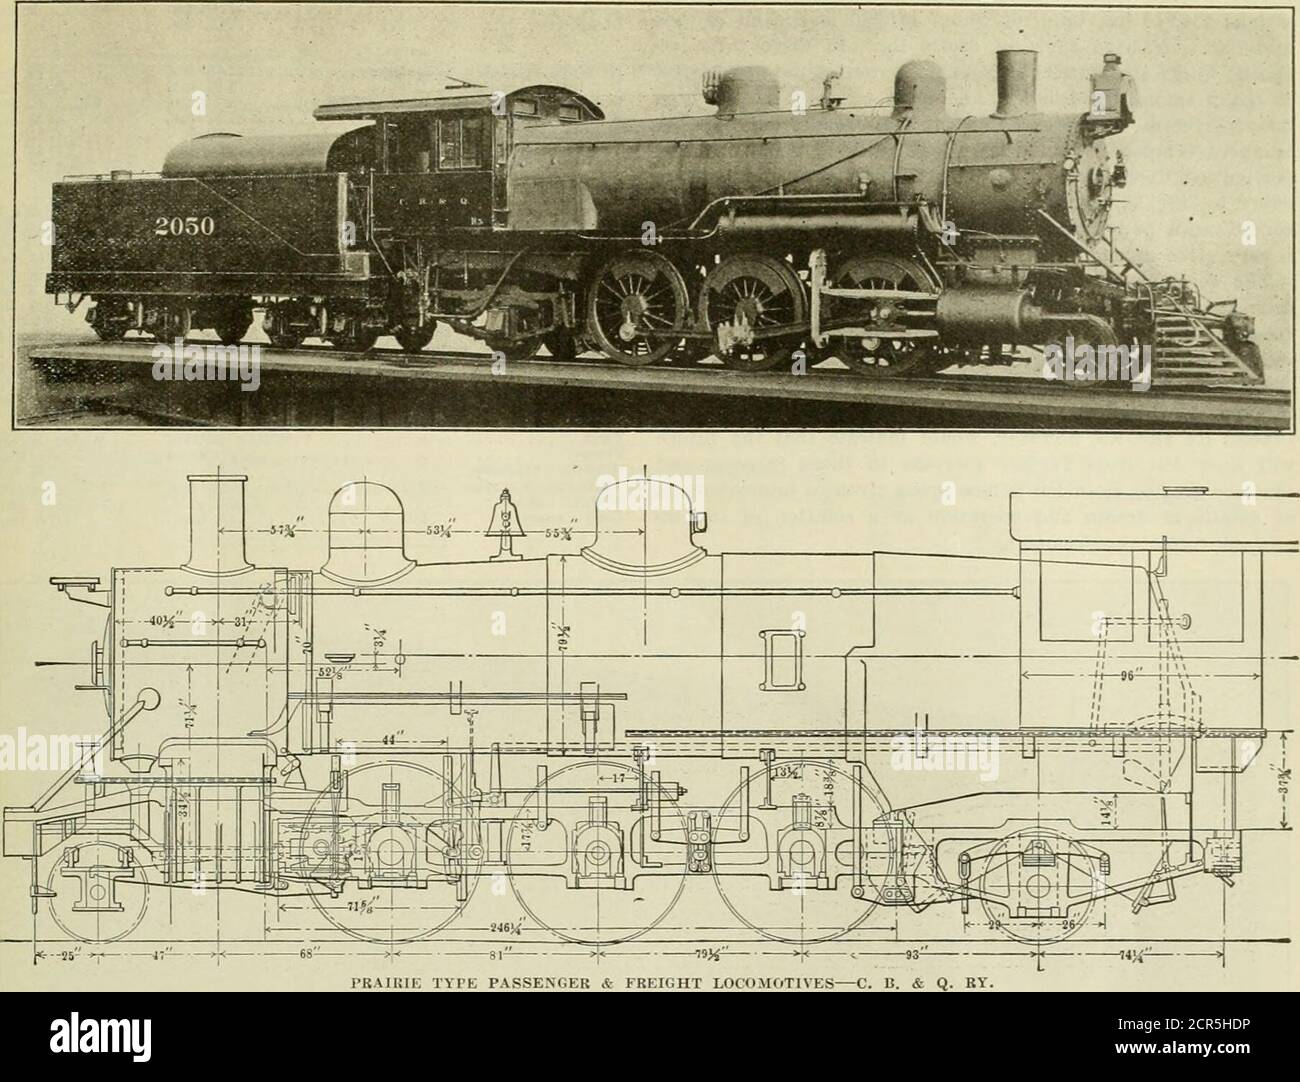 . American engineer and railroad journal . sections of pacific type locomotive. Total Weight Weight on Drivers Tractive Effort Steam Pressure Size. Cylinders Wheel, Diameter Total Heating Surface r, rate Area Tractive Effort X Dia. Drivers -=- Heat ing Surface Weight on Drivers -^ Heating Surface. Vol. Cyls.. cu. ft Total Heating Surface -4- Vol. Cyls. Rl. 138,000 94,000 21,860 190 lbs. 19 z 24 64 1,95842 717 48 7.88 248 R2. 171.000 130,000 25,500 200 lbs. 20 x 24 64 2.888.5 42 565 45 8.74 330 R3. 181.920 134,550 28,300 200 lbs. 21 x 26 69 3,060.5 42 64044 10.4294 R4. 212.500154,00035,060210 l Stock Photo